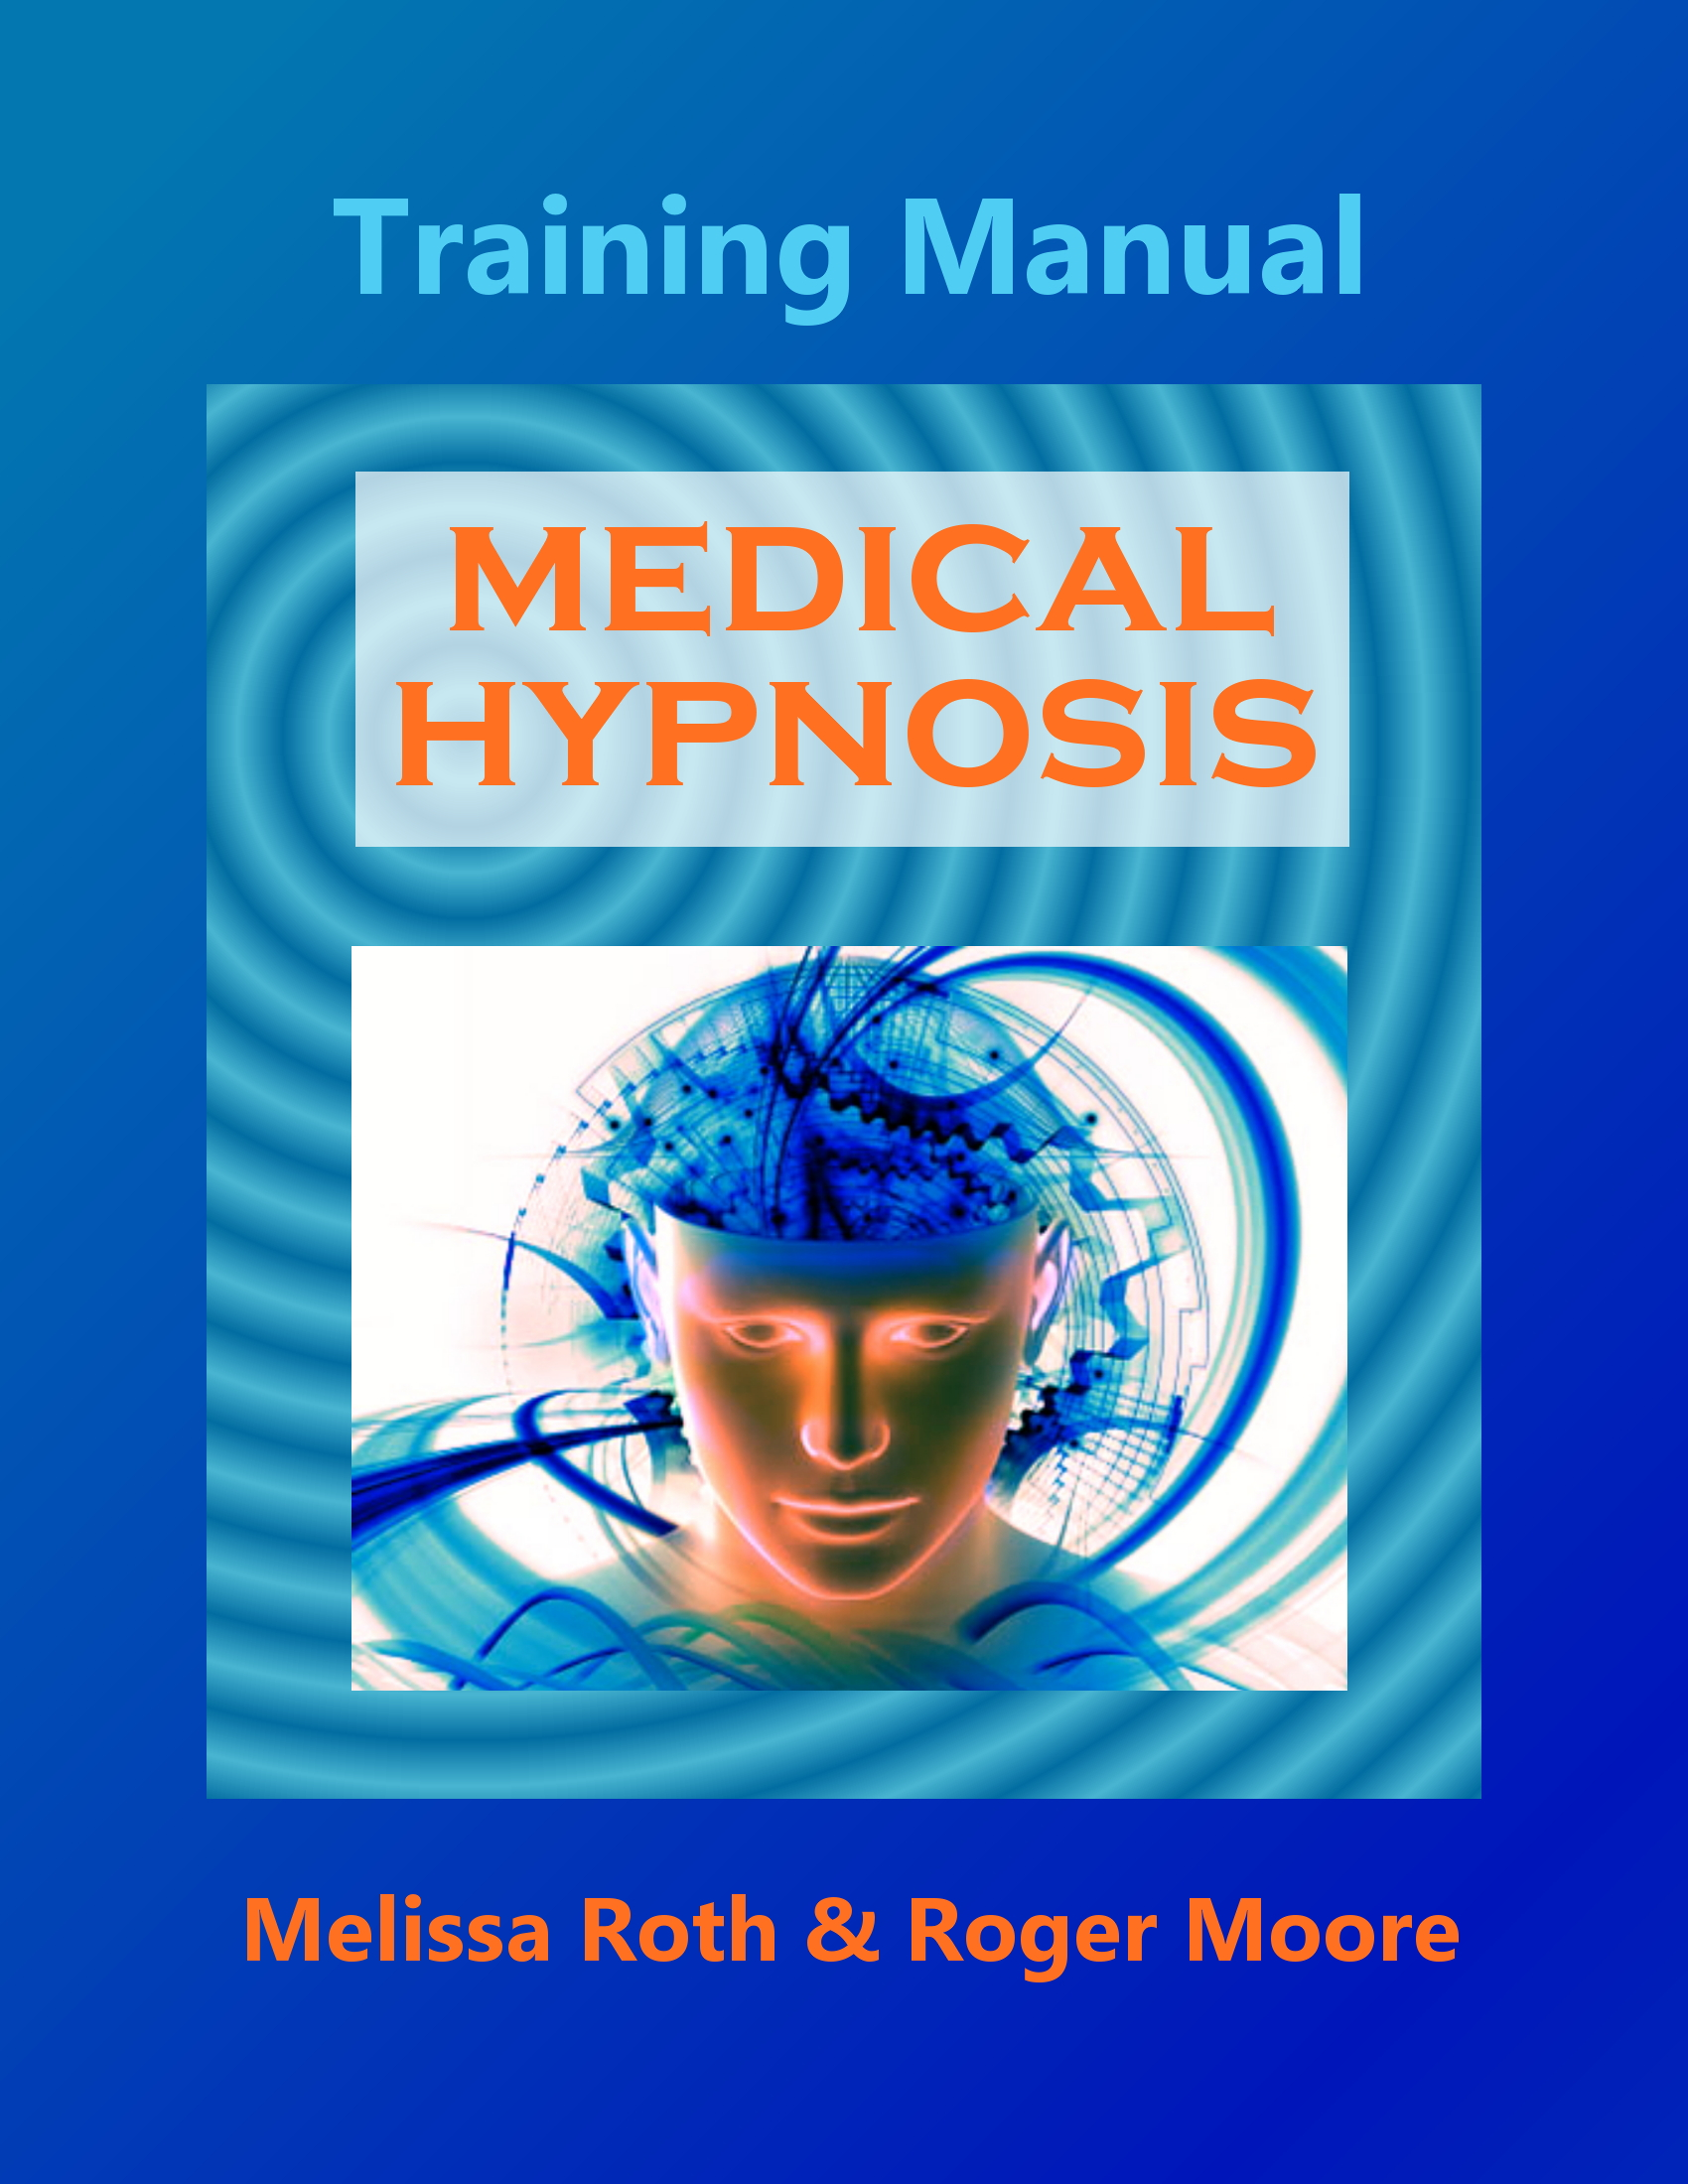 Medical Hypnotherapy Specialist eTraining Manual by Melissa Roth & Roger Moore